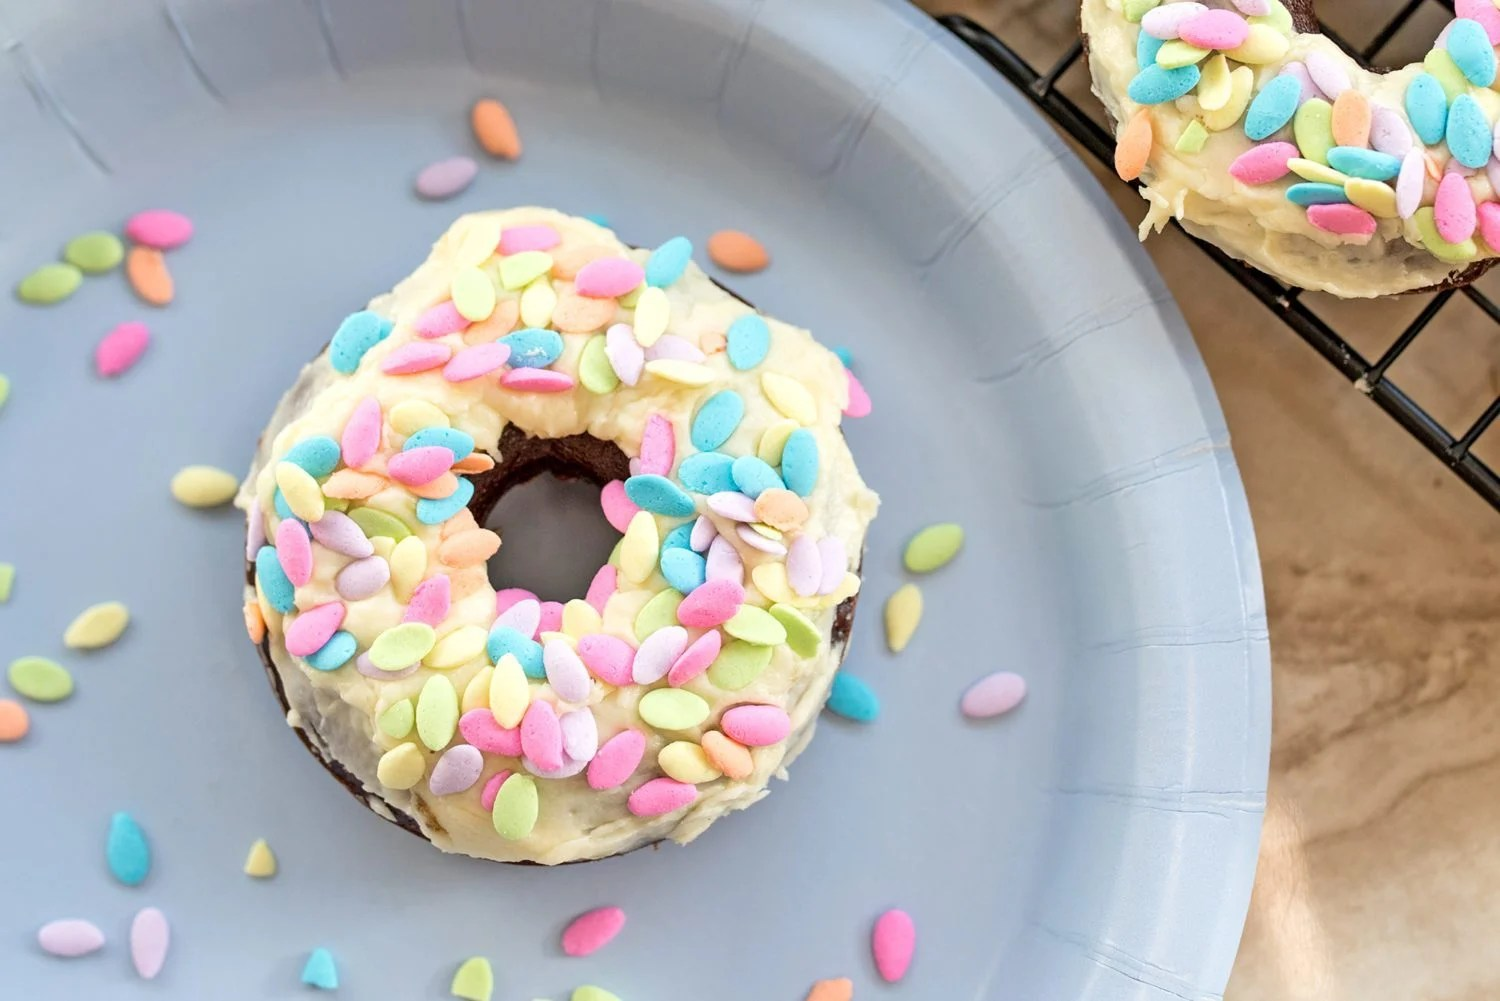 donut on a plate with sprinkles around it